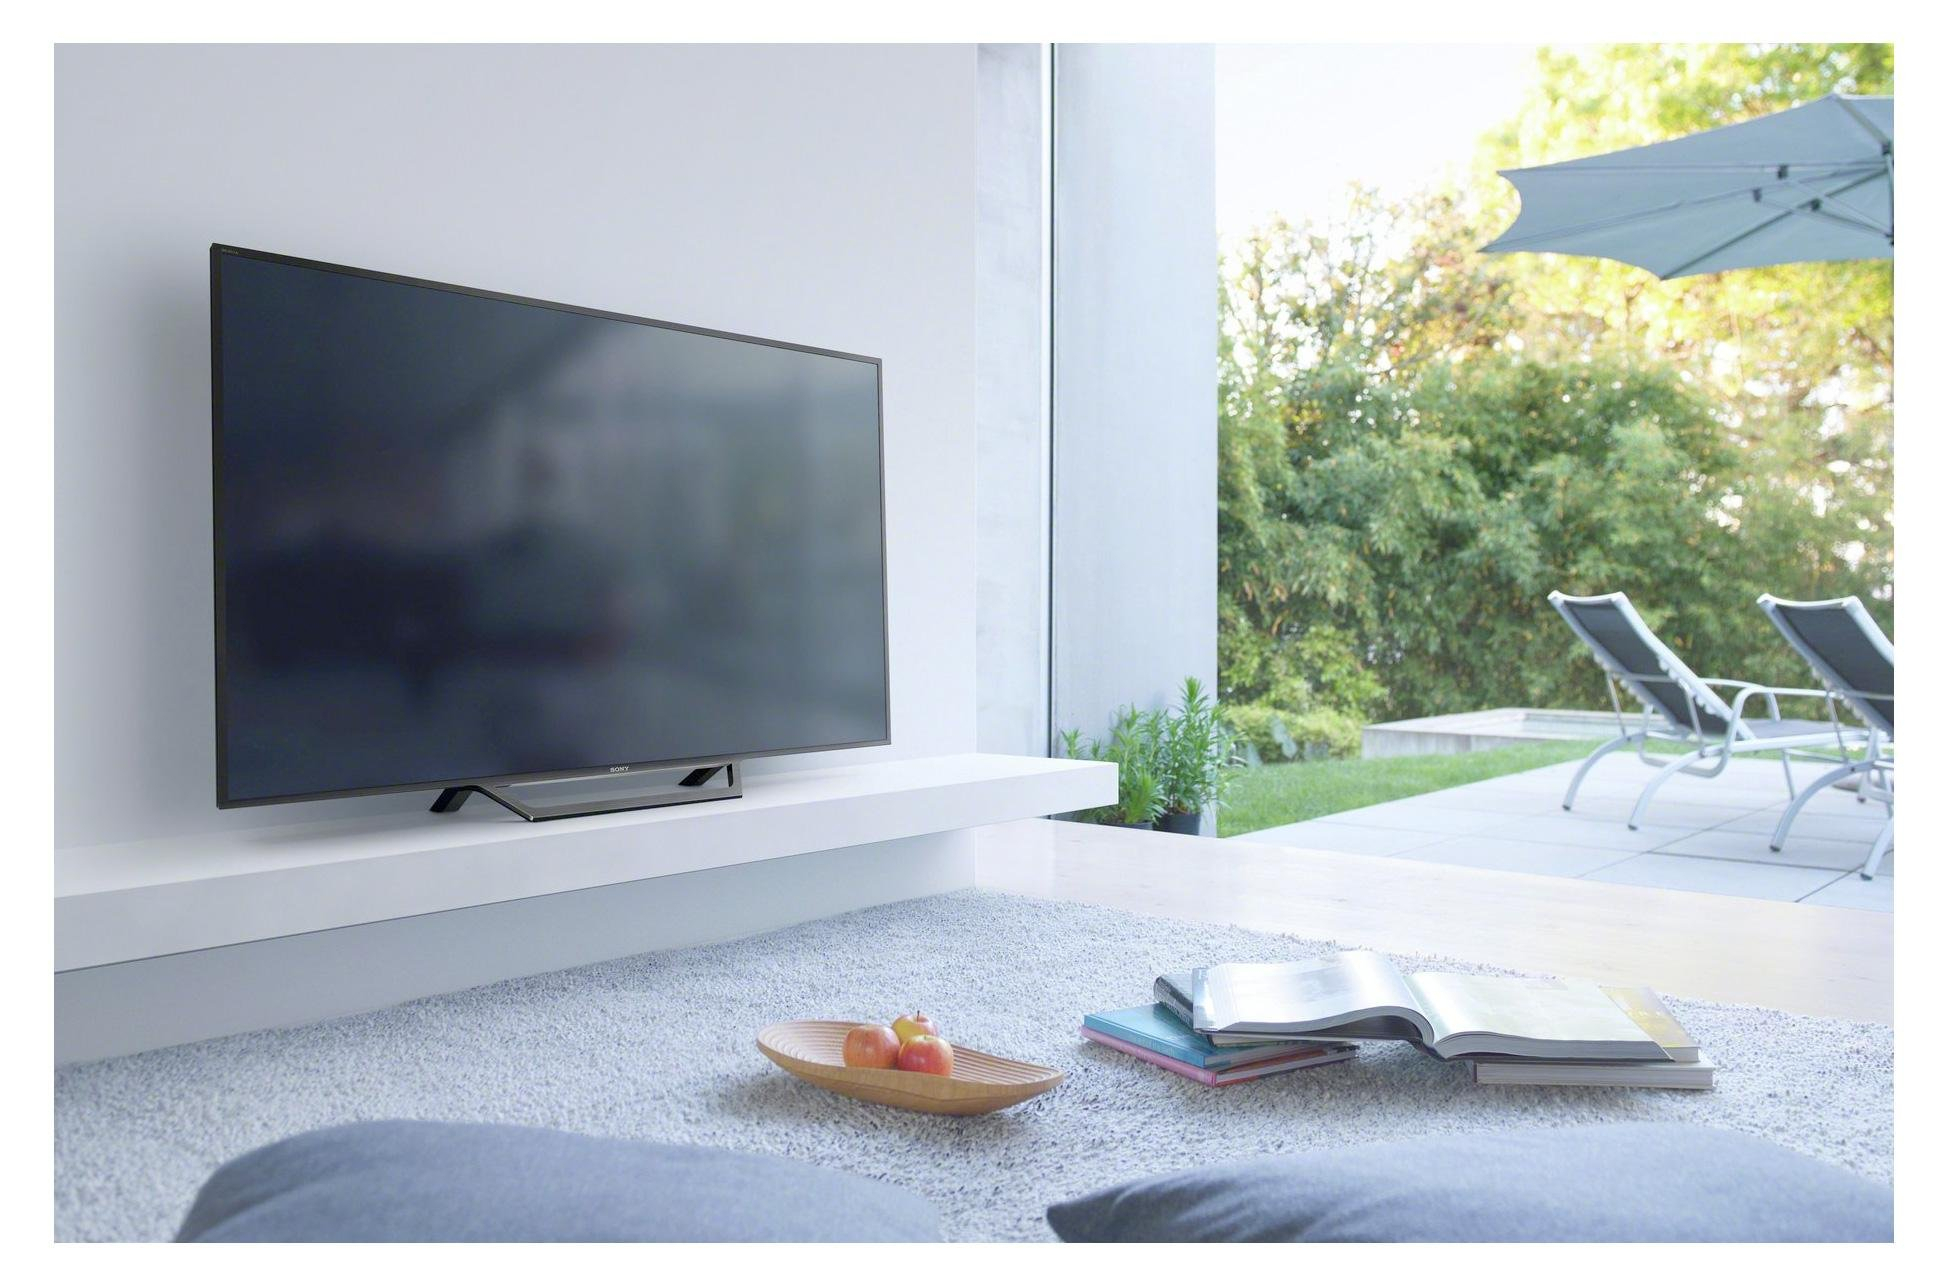 Sony Bravia Kdl48Wd653 | 48 Inch Smart Led Tv 1080P Hd Freeview Hd regarding Wakefield 85 Inch Tv Stands (Image 24 of 30)